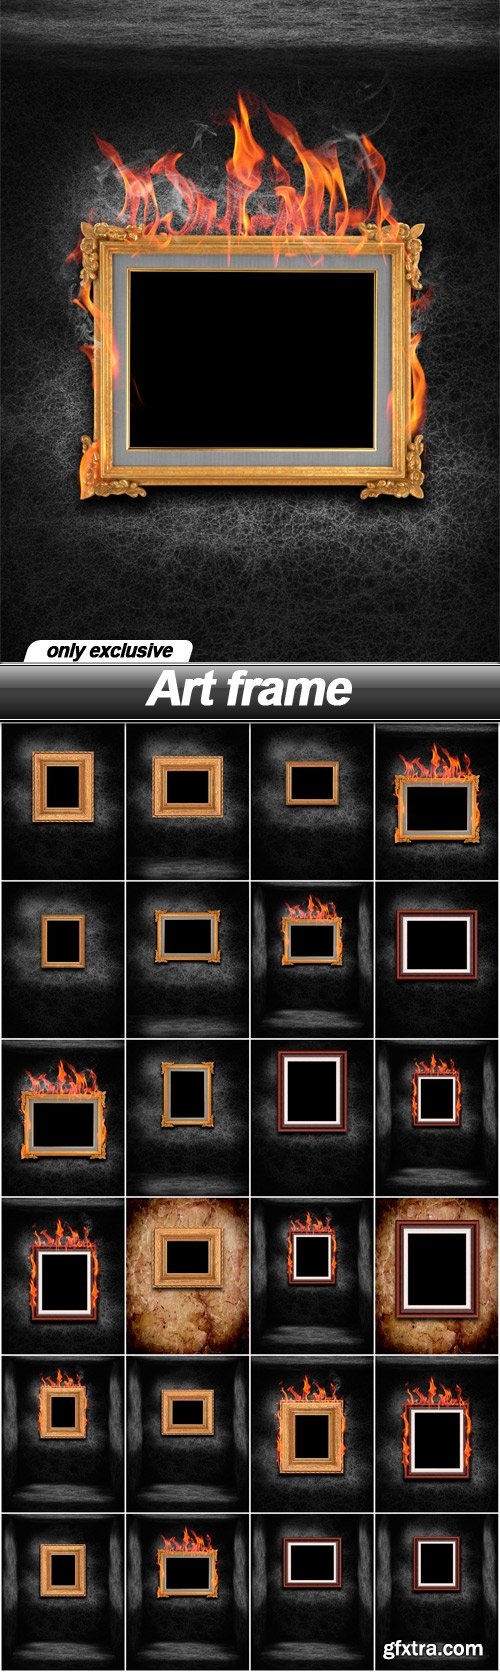 Art frame - 24 UHQ JPEG